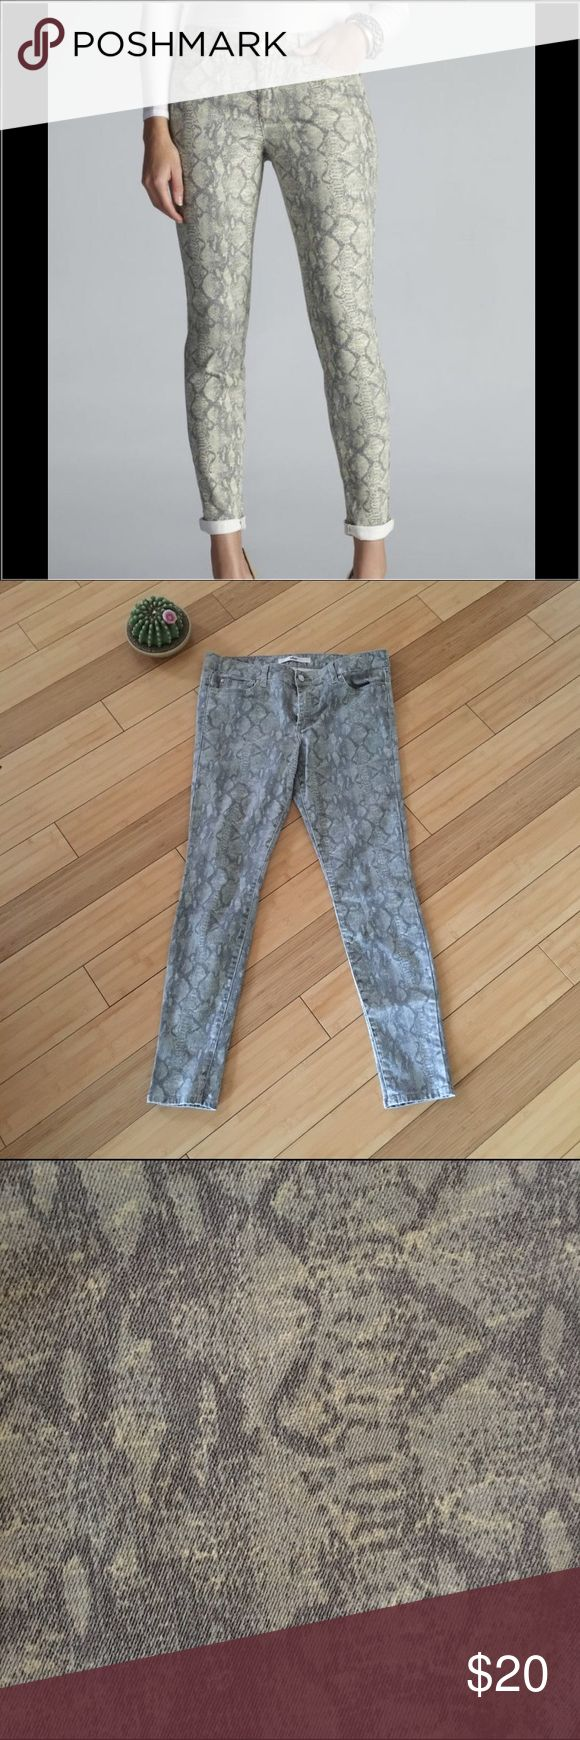 "Else Python Printed Skinny Jeans These skinny jeans can be dressed up or dressed down. Approx 28"" inseam. Gently worn and in good condition. Cotton/Poly/Lycra blend. Jeans Skinny"